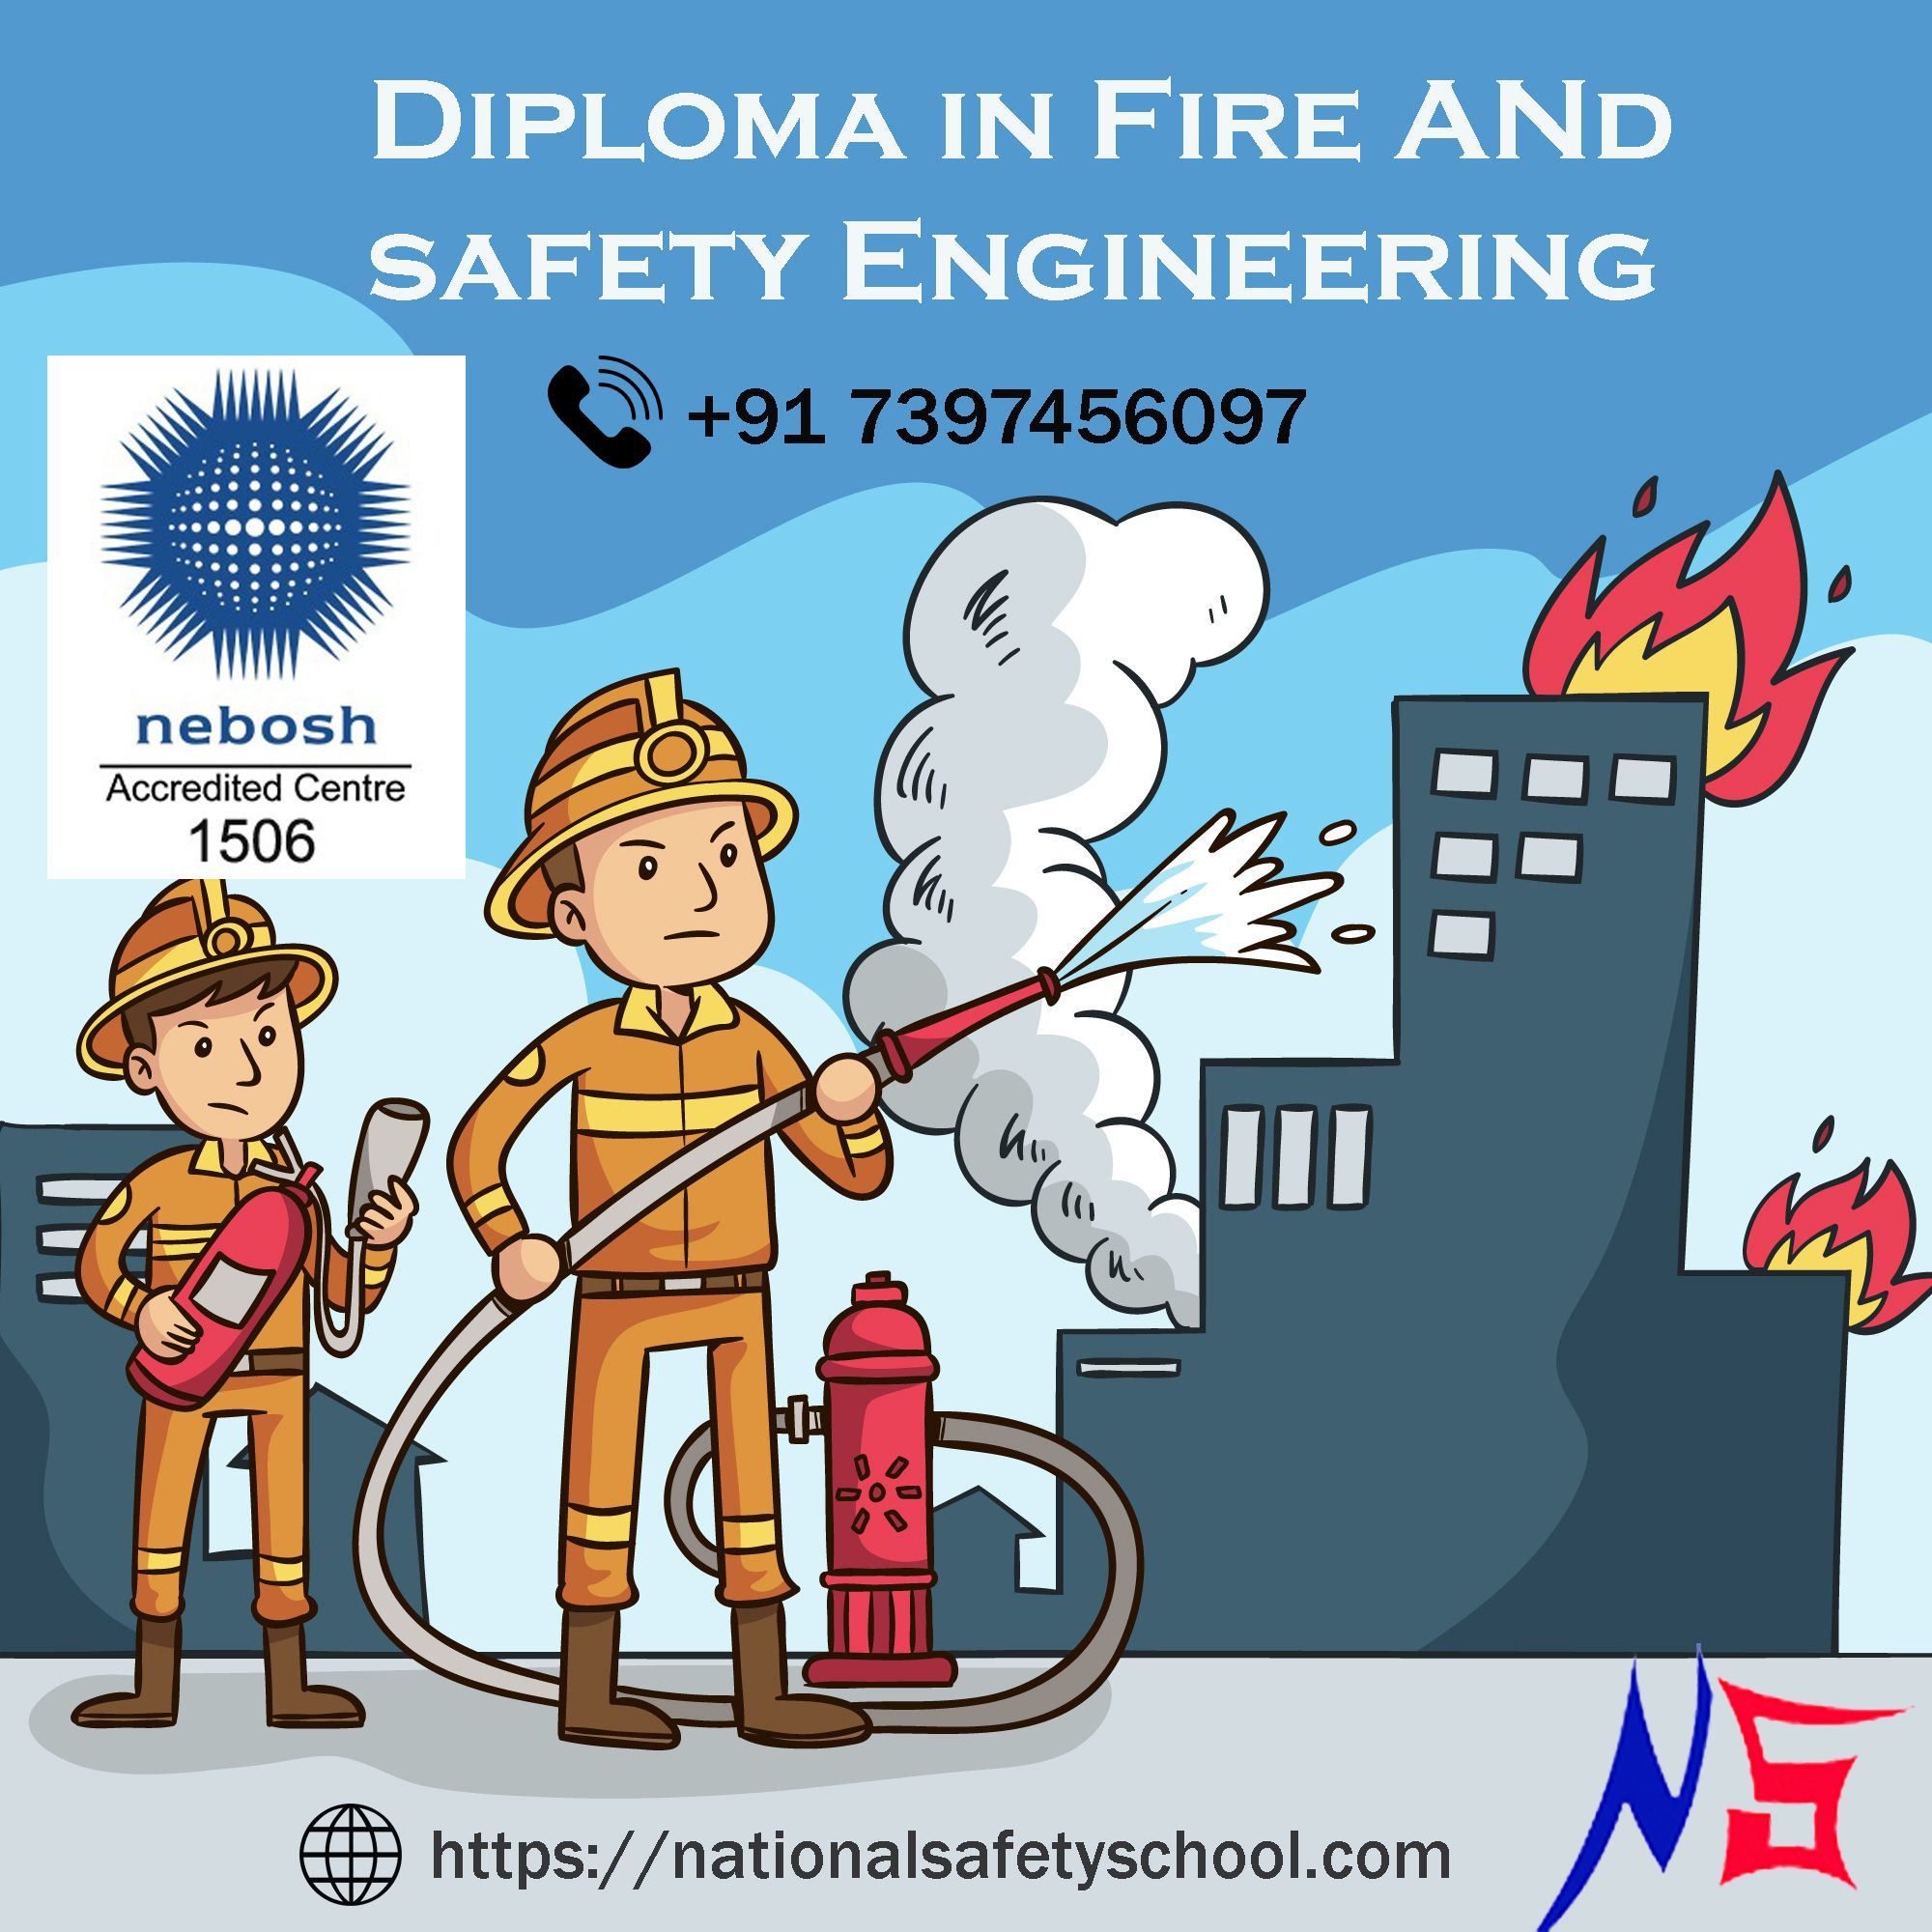 Celebrate this Diwali with Newly arrived fire and safety